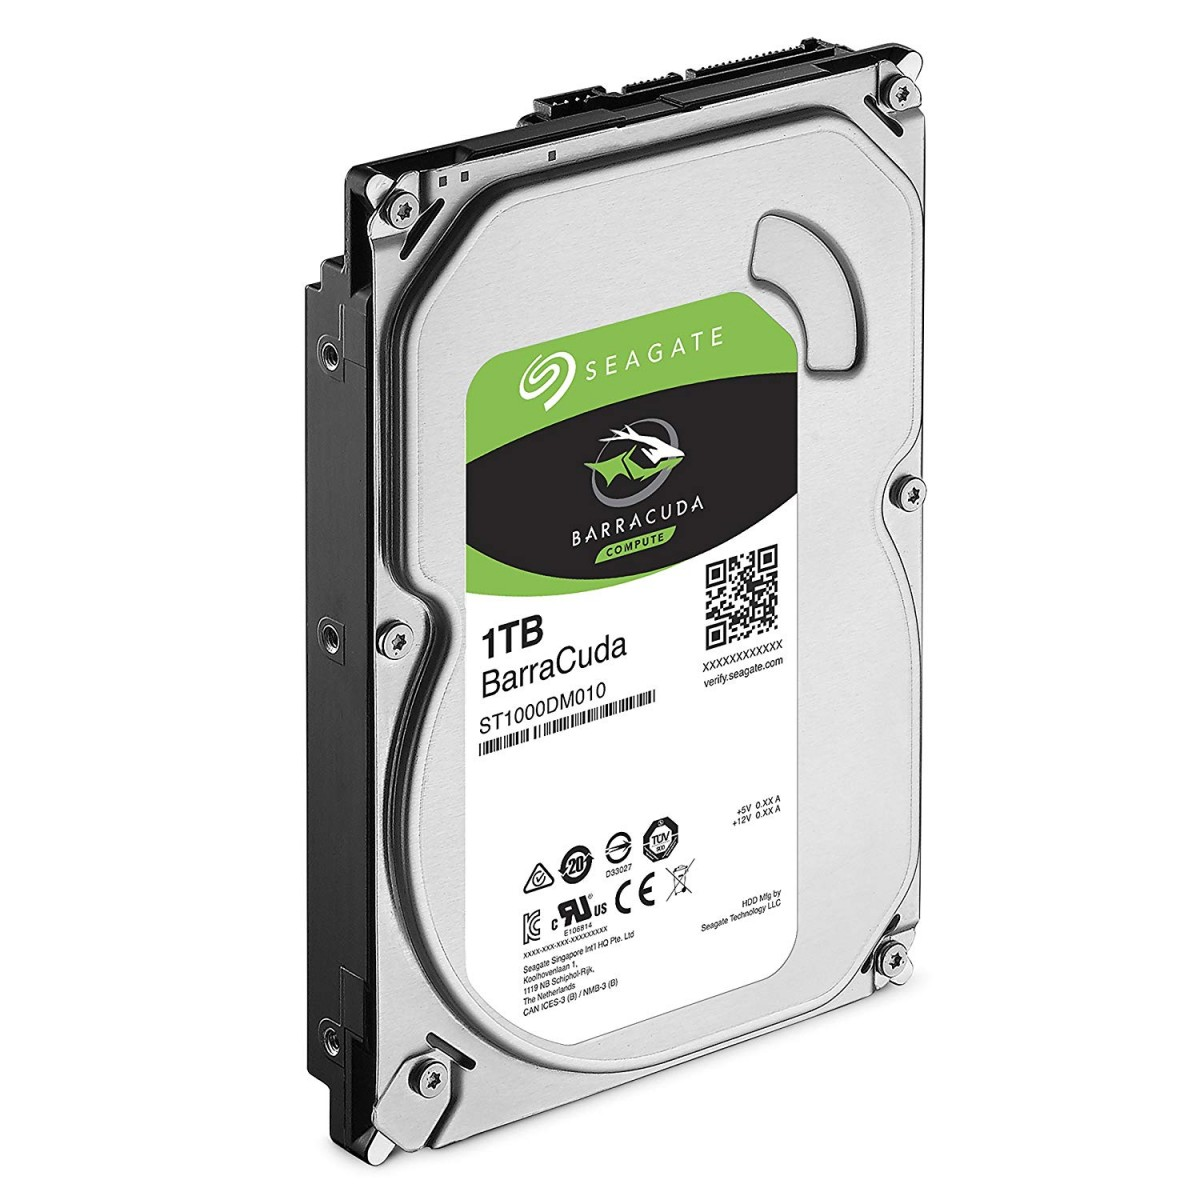 SEAGATE 1TB Barracuda Desktop Hard Drive